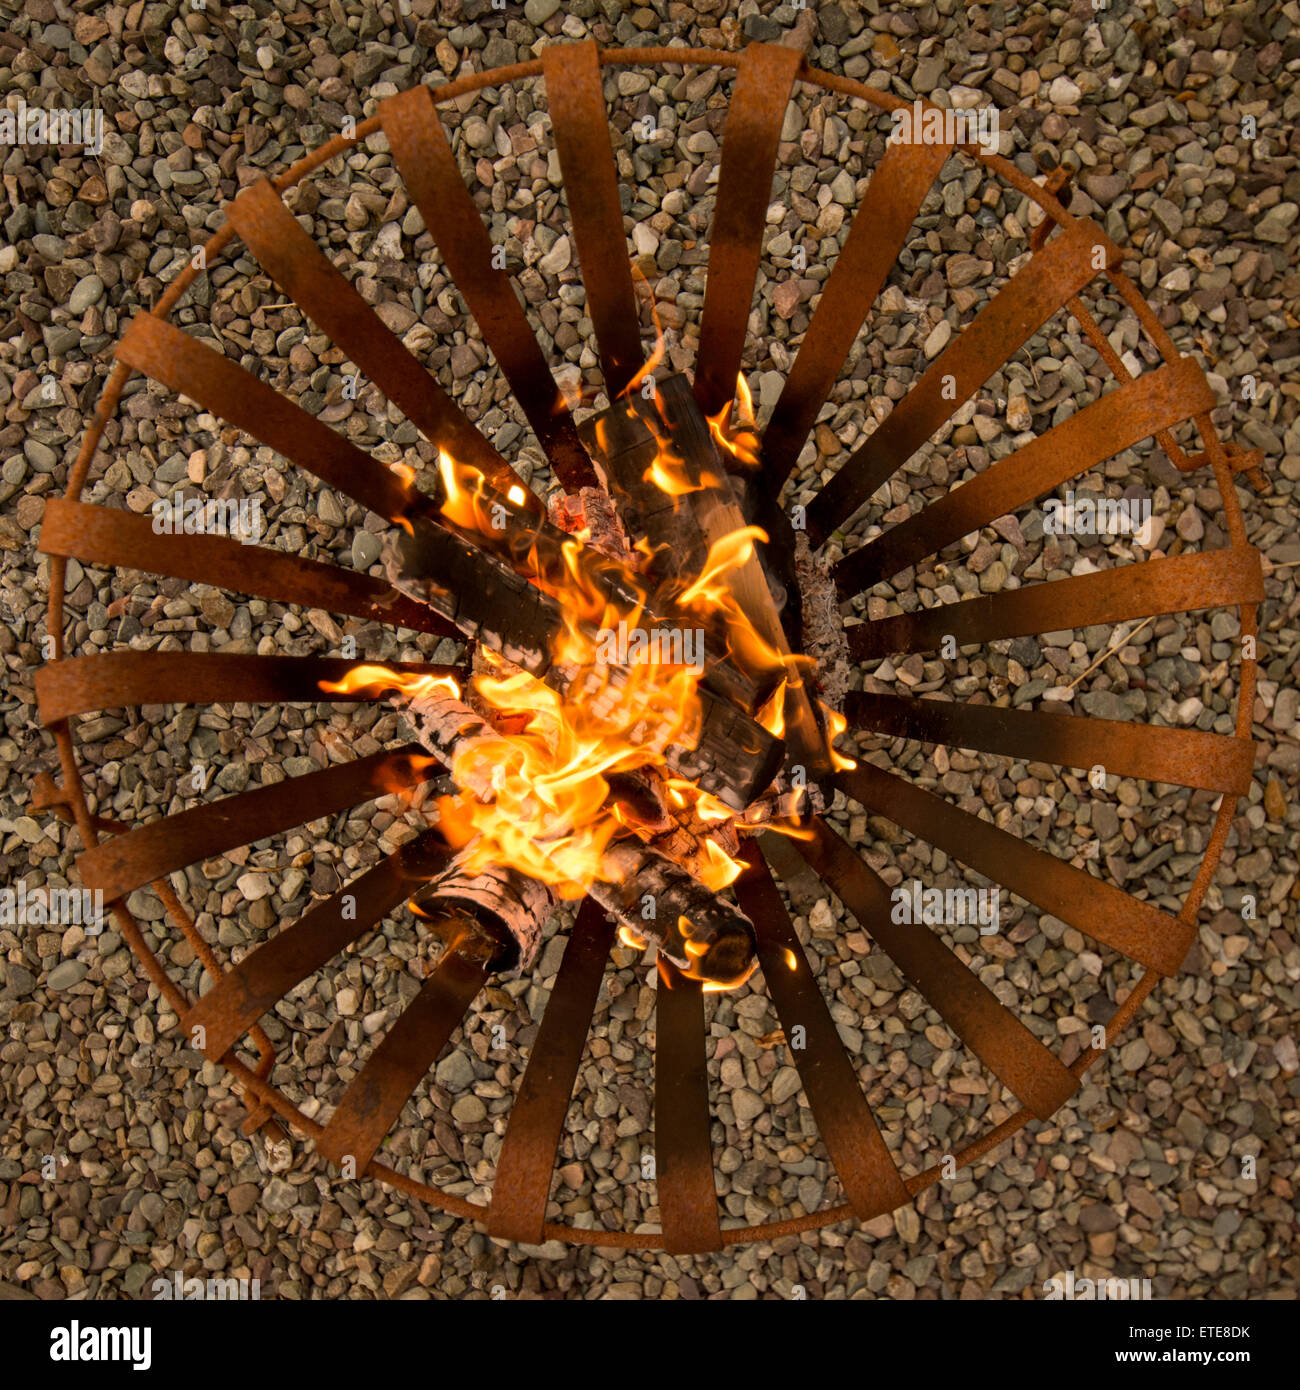 Wood burning in rusted metal brazier on a summers evening - Stock Image